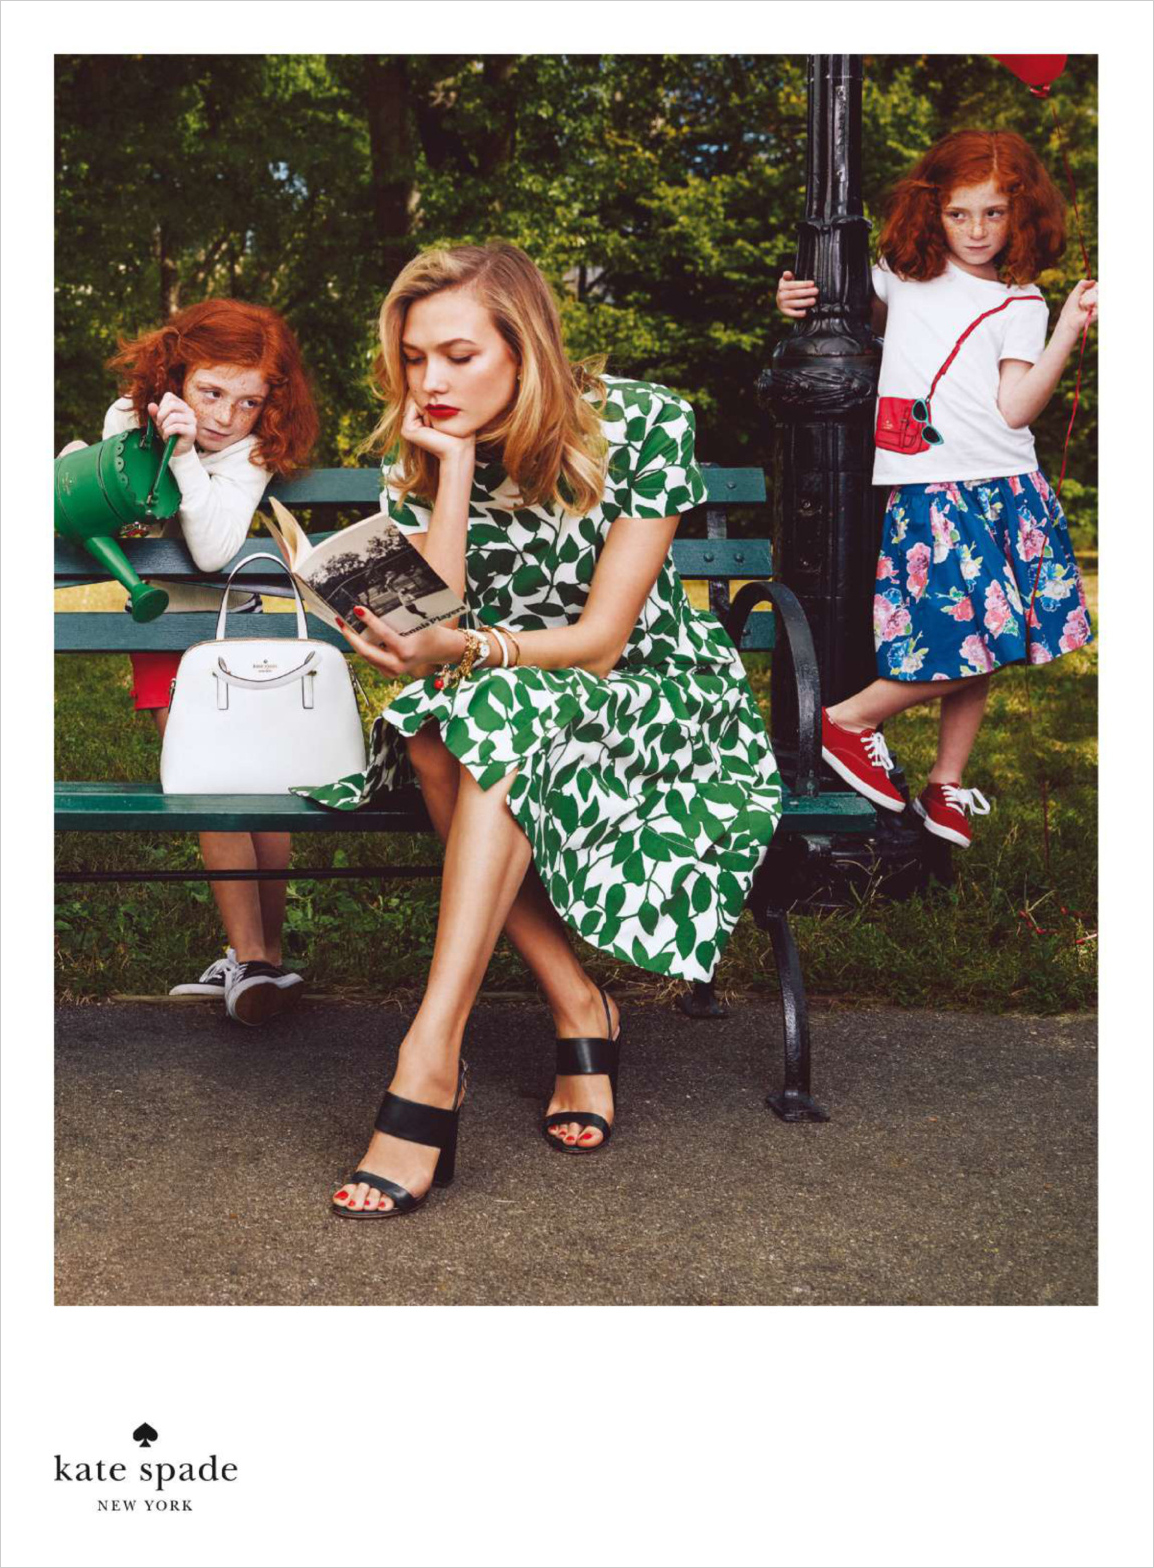 kate-spade-spring-ad campaign-2015-the-impression-03